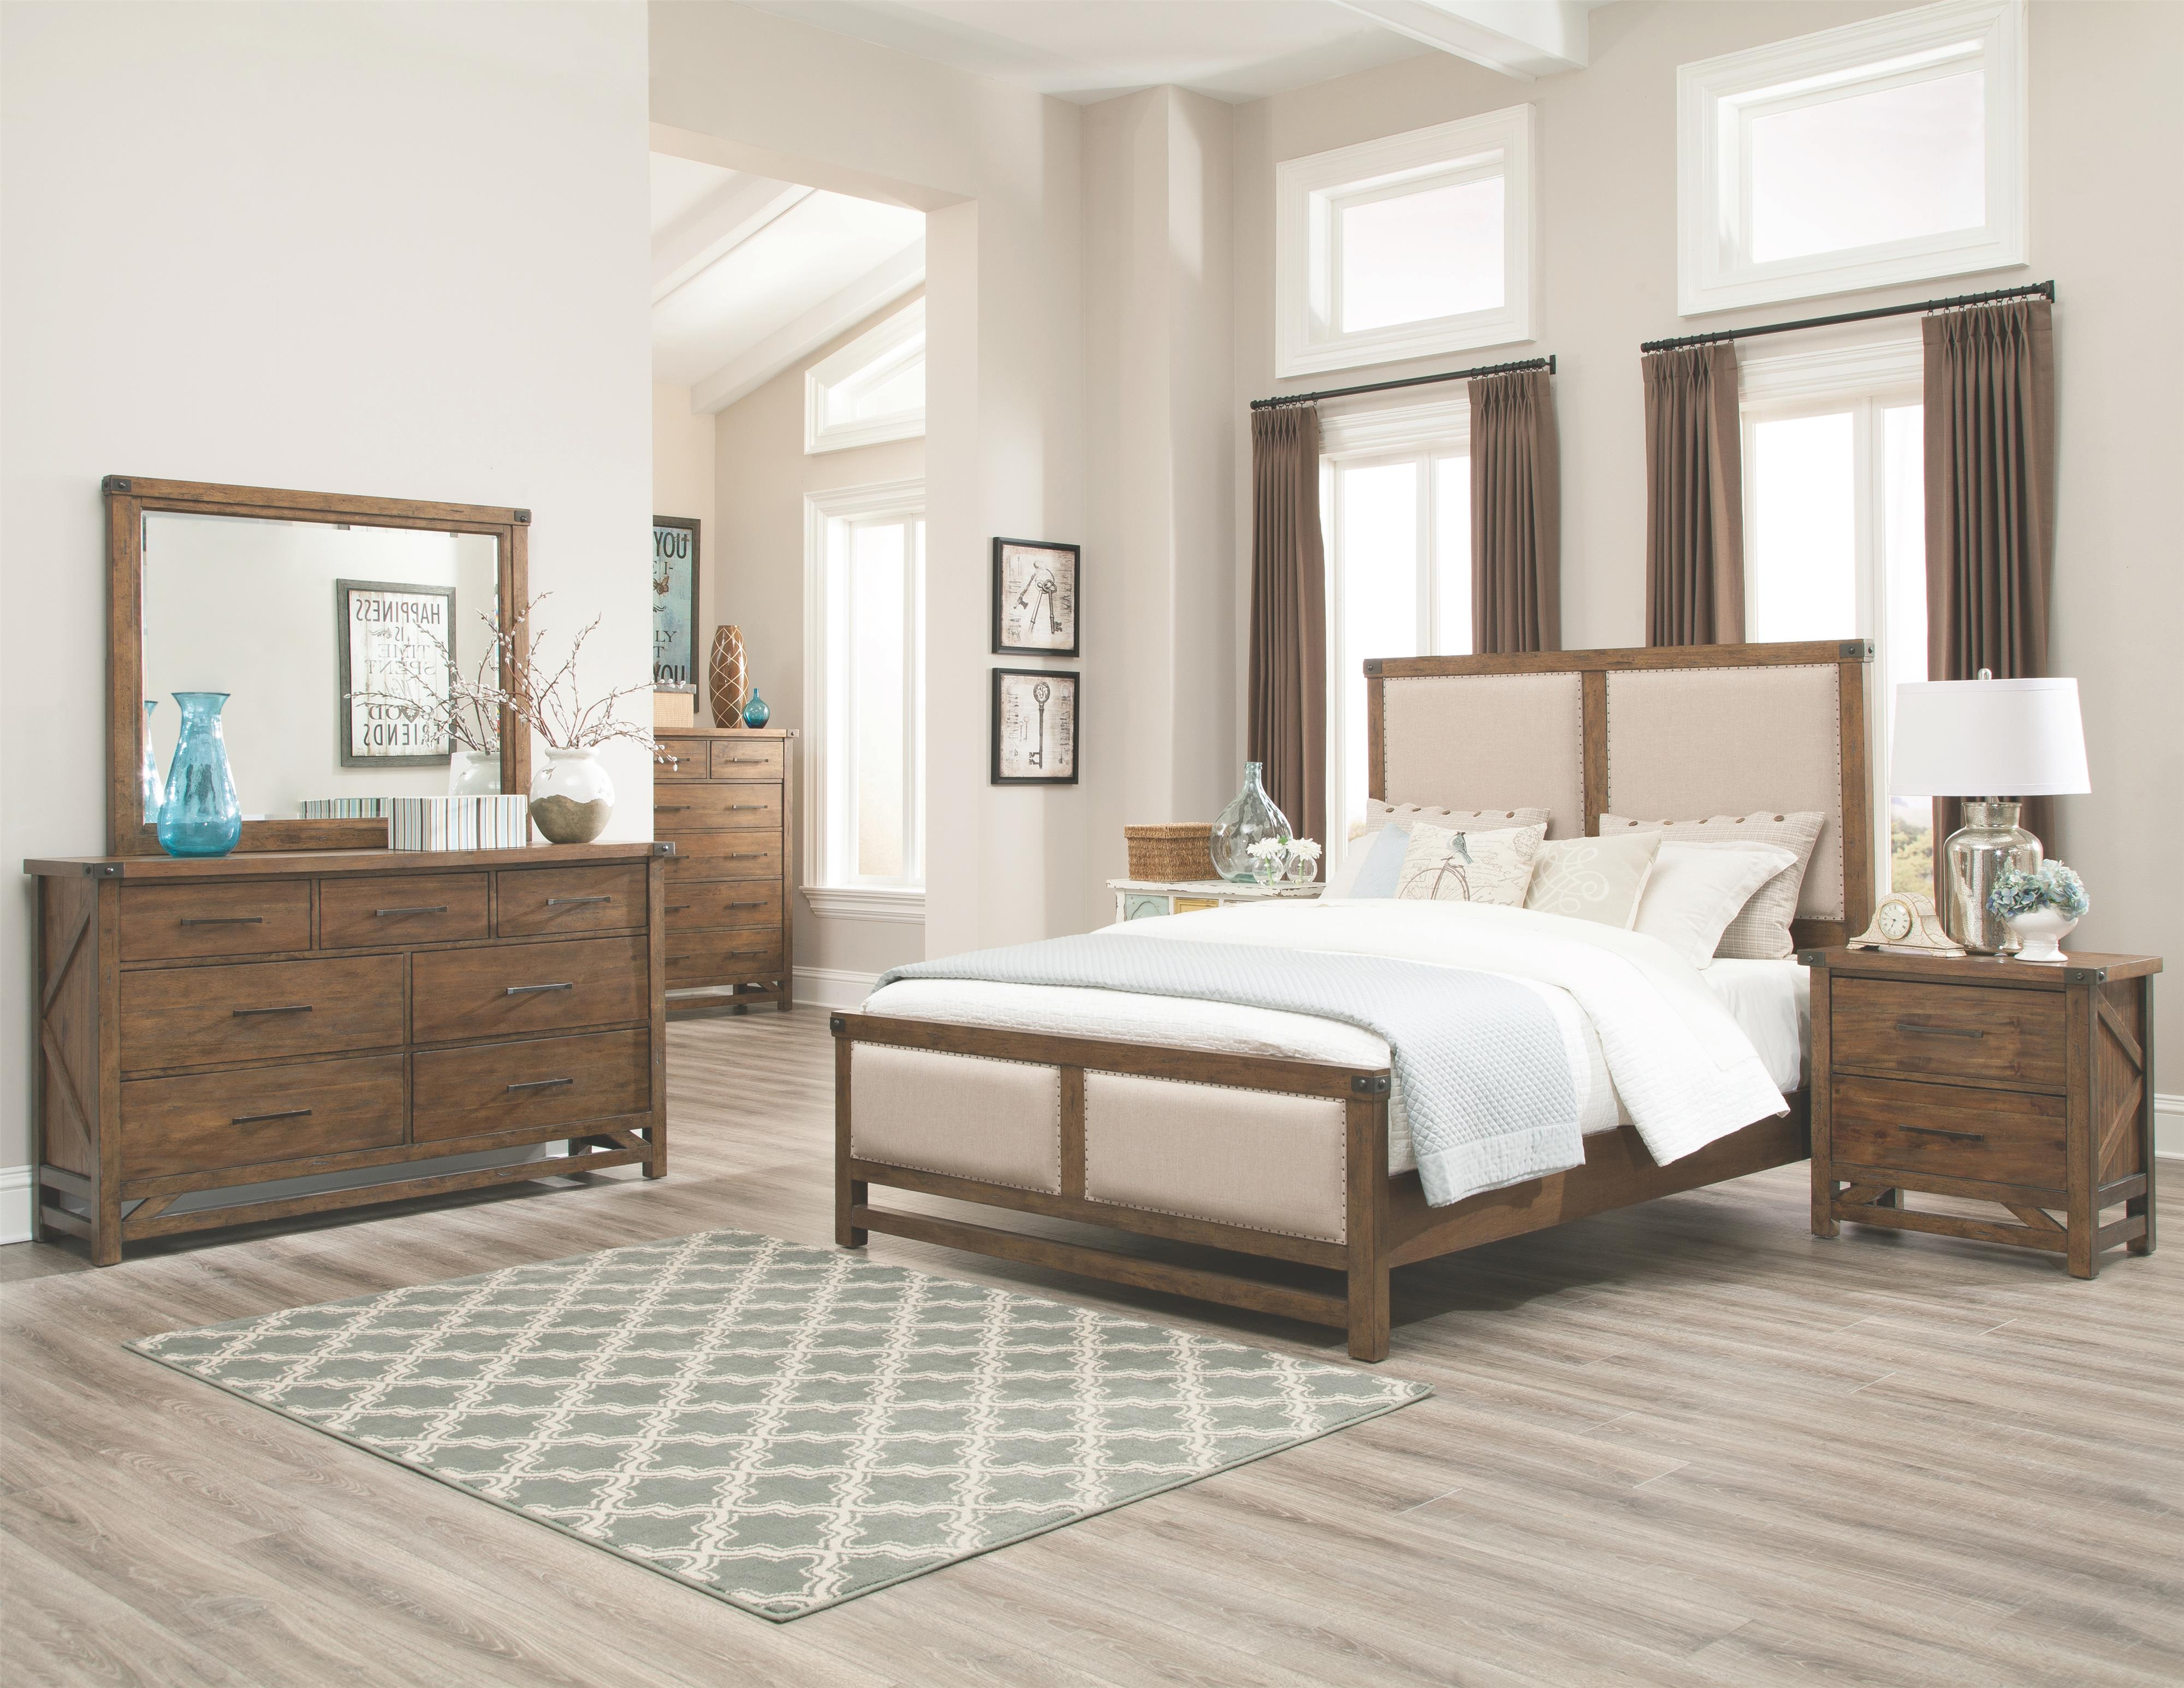 Coaster Bridgeport King Bedroom Group - Item Number: K 20417 Bedroom Group 1